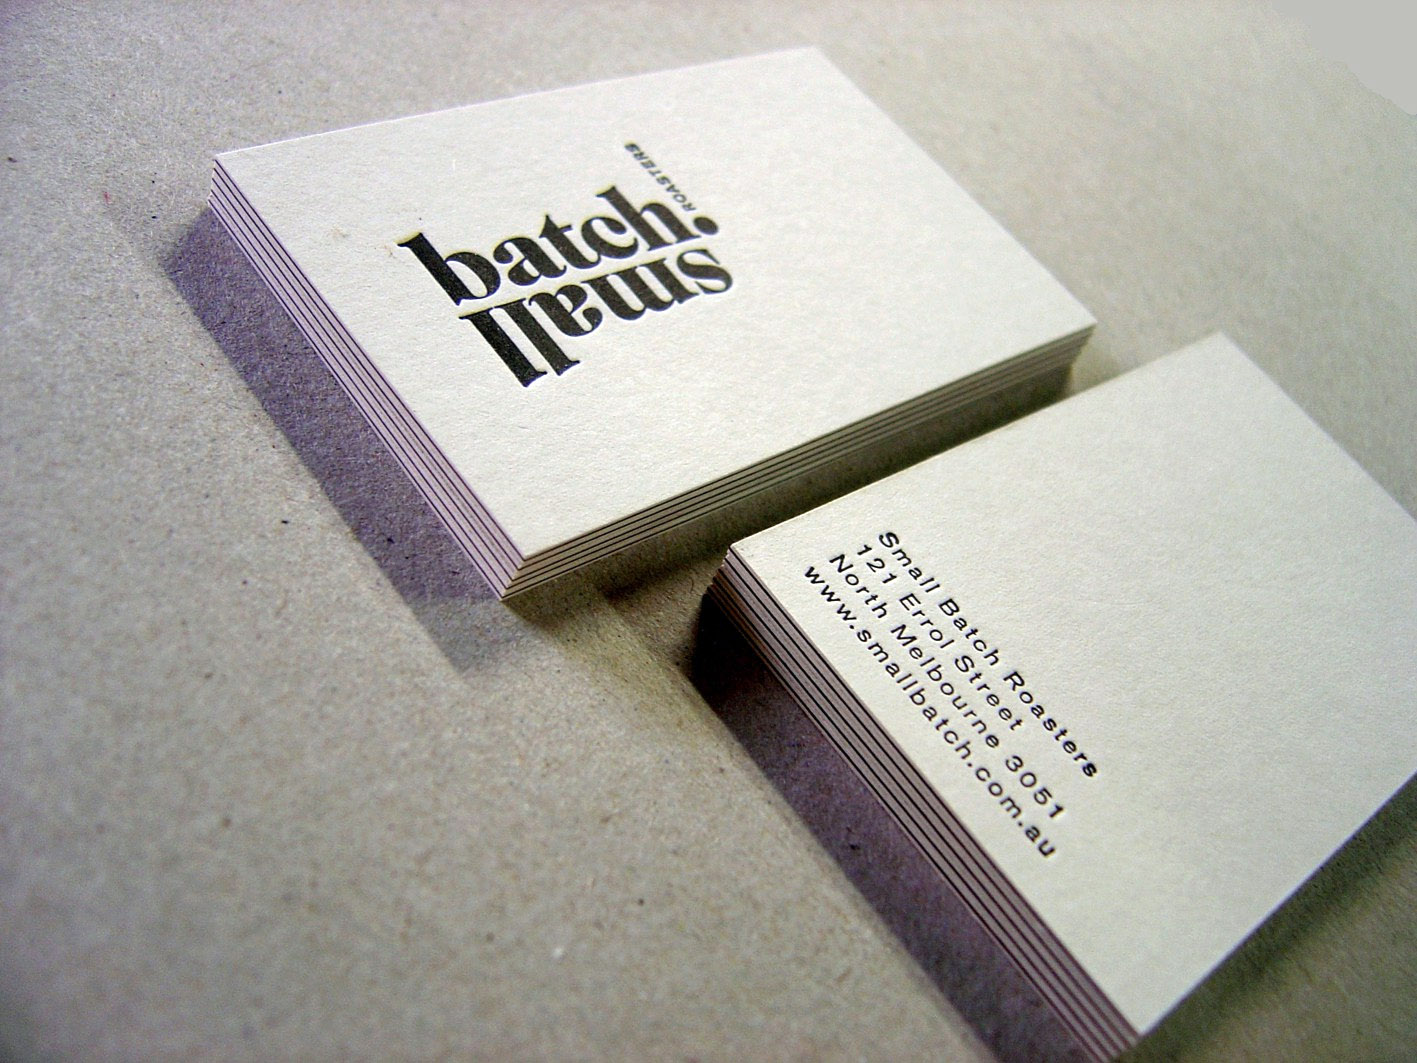 Letterpress business card broadsheet media cardrabbit creative triplex business cards small batch roasters reheart